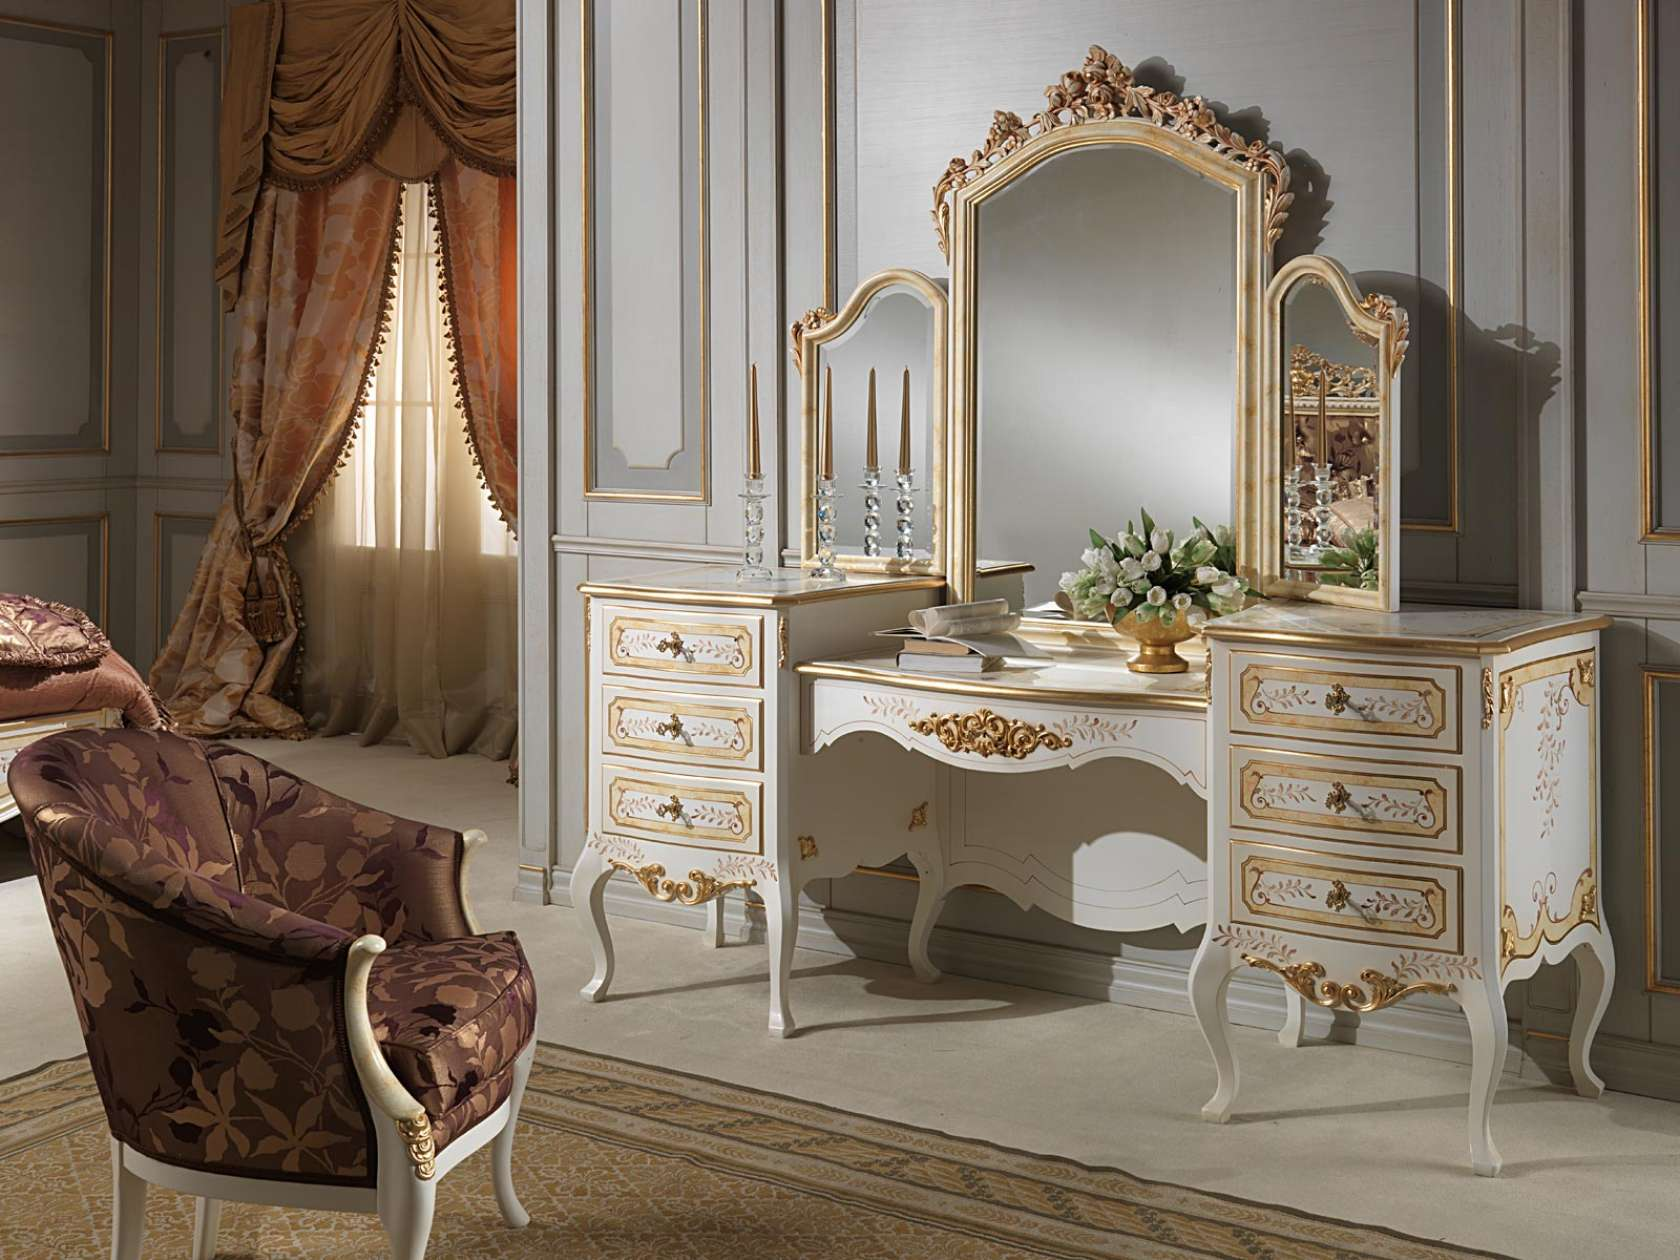 Dressing Table With Mirror, Classic Style, Louvre Luxury Collection.  Patinated Ivory Finish And